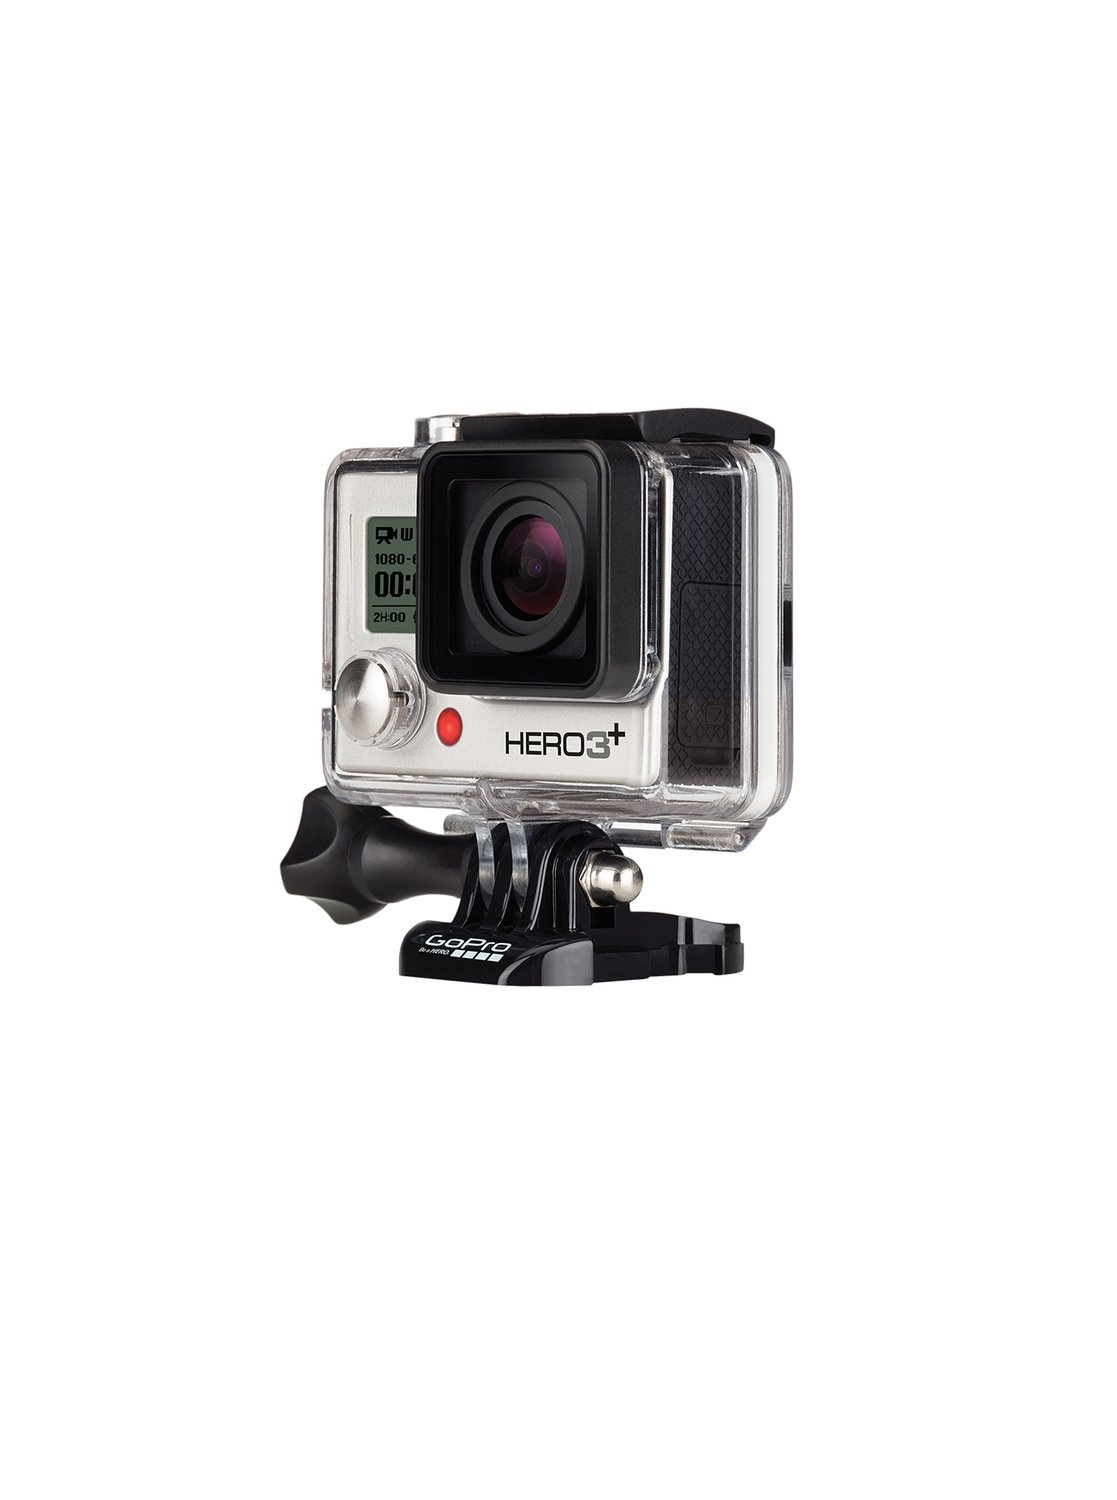 gopro hero3 silver edition camera chdhn302 roxy. Black Bedroom Furniture Sets. Home Design Ideas